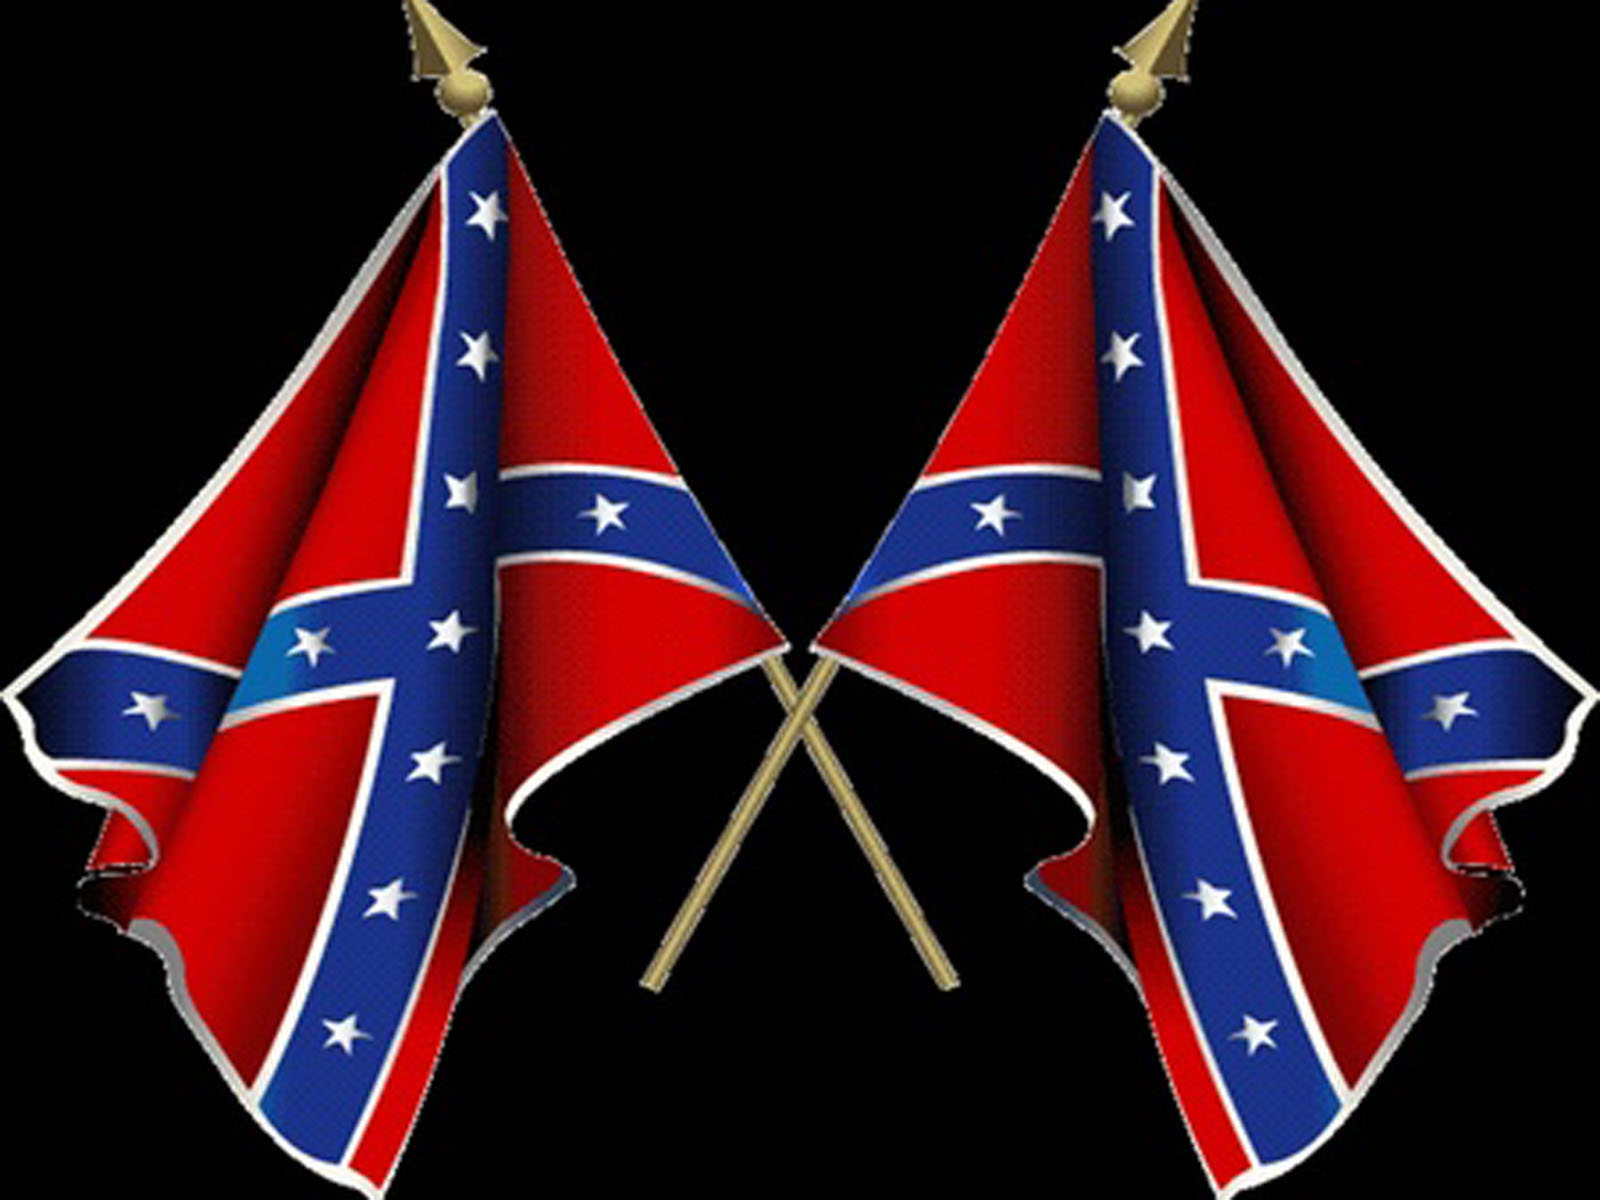 Texas Confederate Flag Wallpapers HD Wallpapers 1600x1200